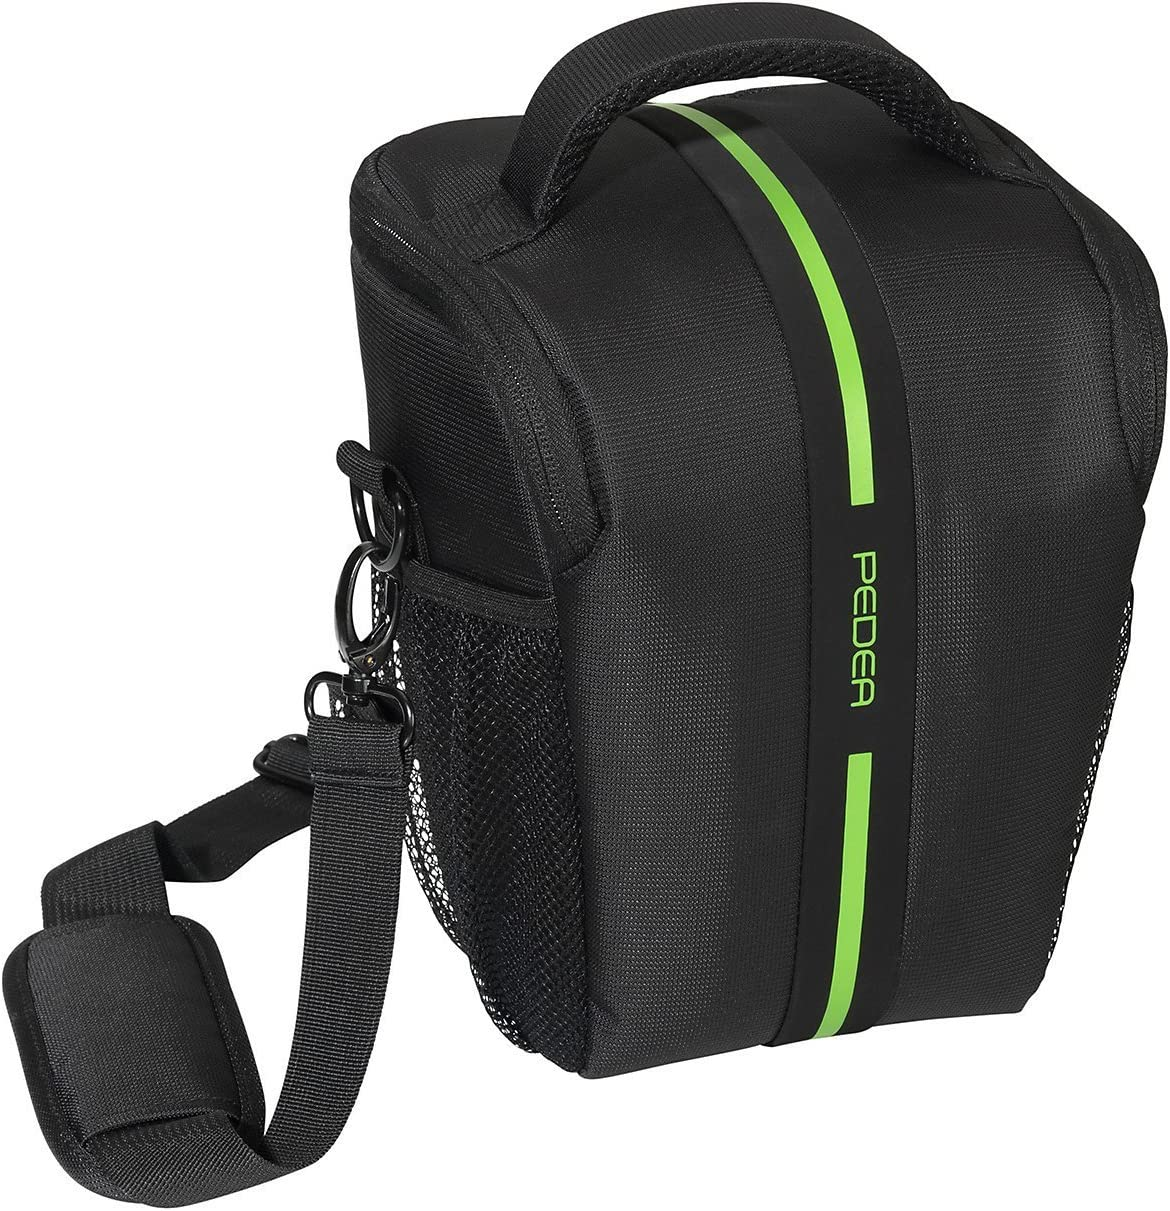 Nikon D800 Pedea SLR Camera Bag Toploader with Shoulder Strap K-30 5X Accessory Compartments and Screen Protector for Pentax K-5 K-r Canon EOS 5D Mark 2